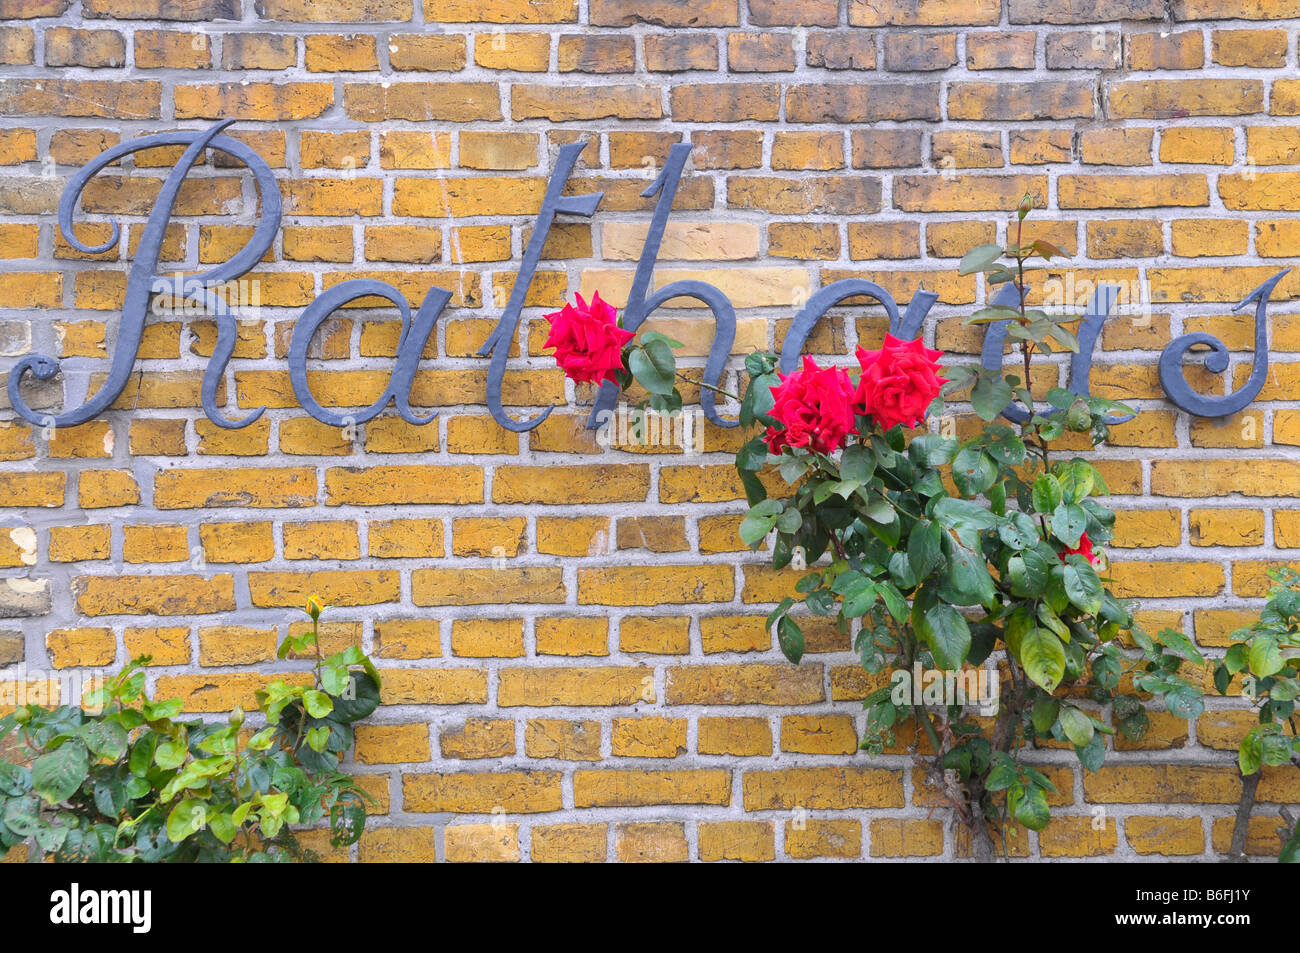 Sign, Rathaus or Town Hall, on a wall, red roses growing up it, in Maasholm, Schleswig-Holstein, Germany, Europe - Stock Image